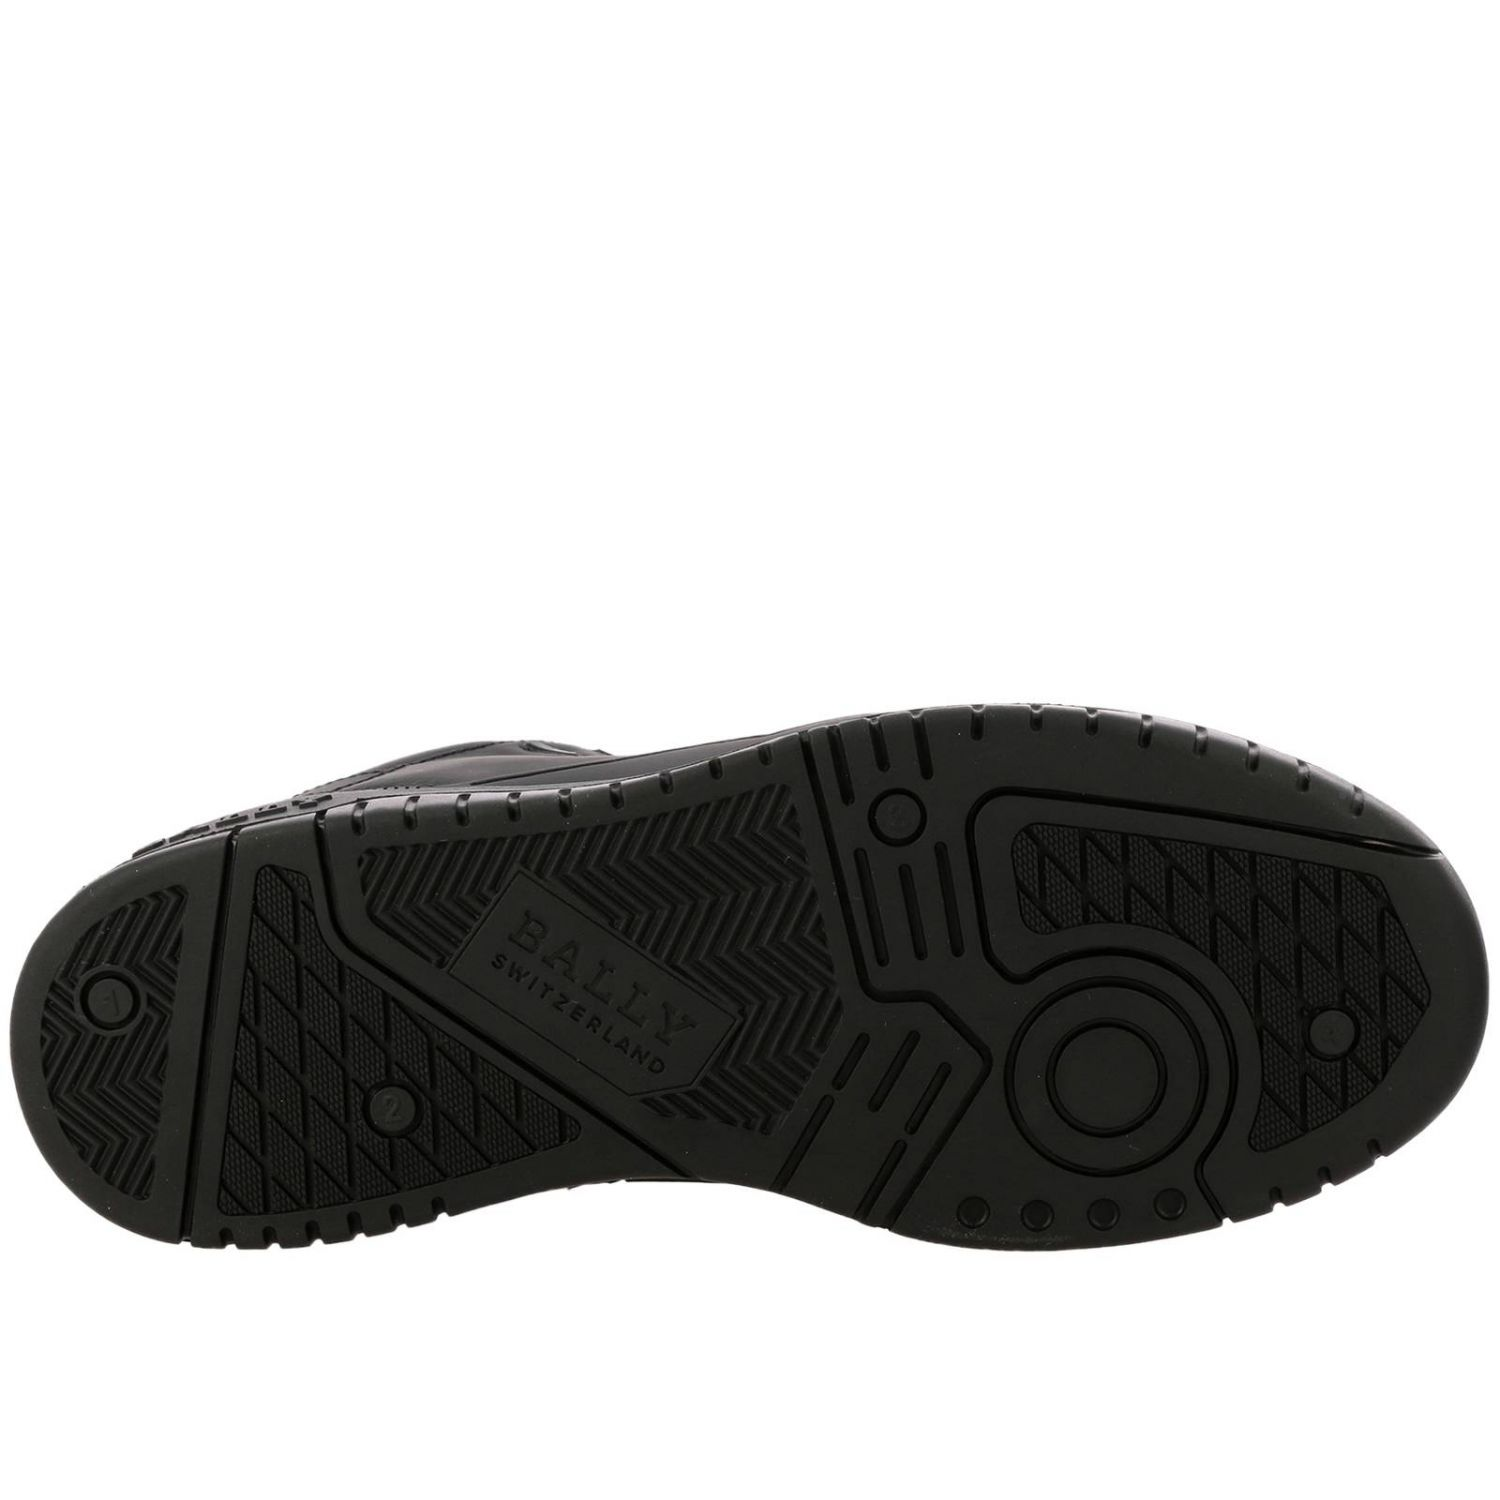 Kuba Bally sneakers in leather with micro holes and maxi rubber logo black 6